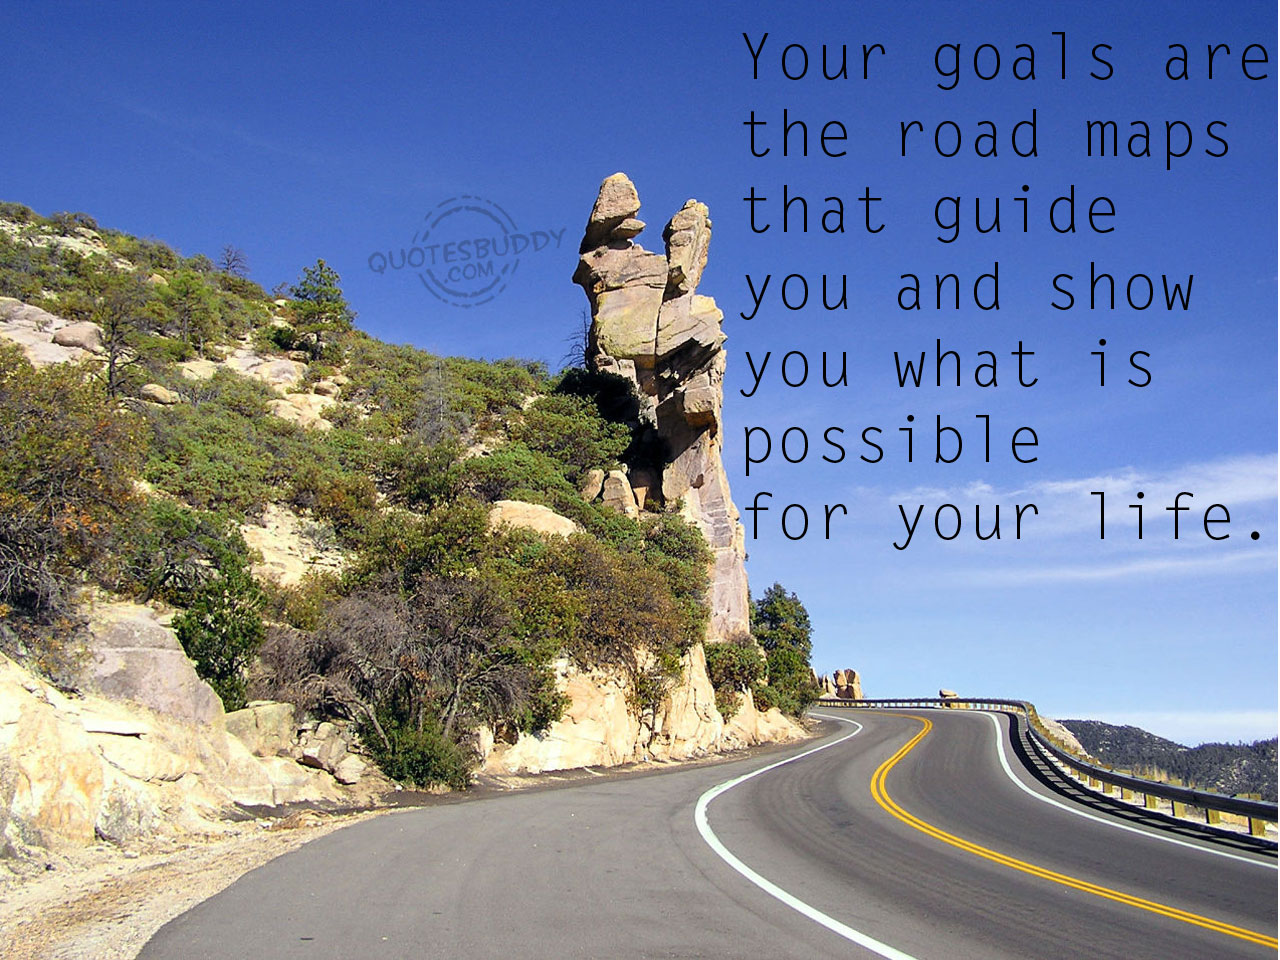 Your Goal Is are the road maps that Guide You and Show You What Is Possible for Your Life ~ Goal Quote